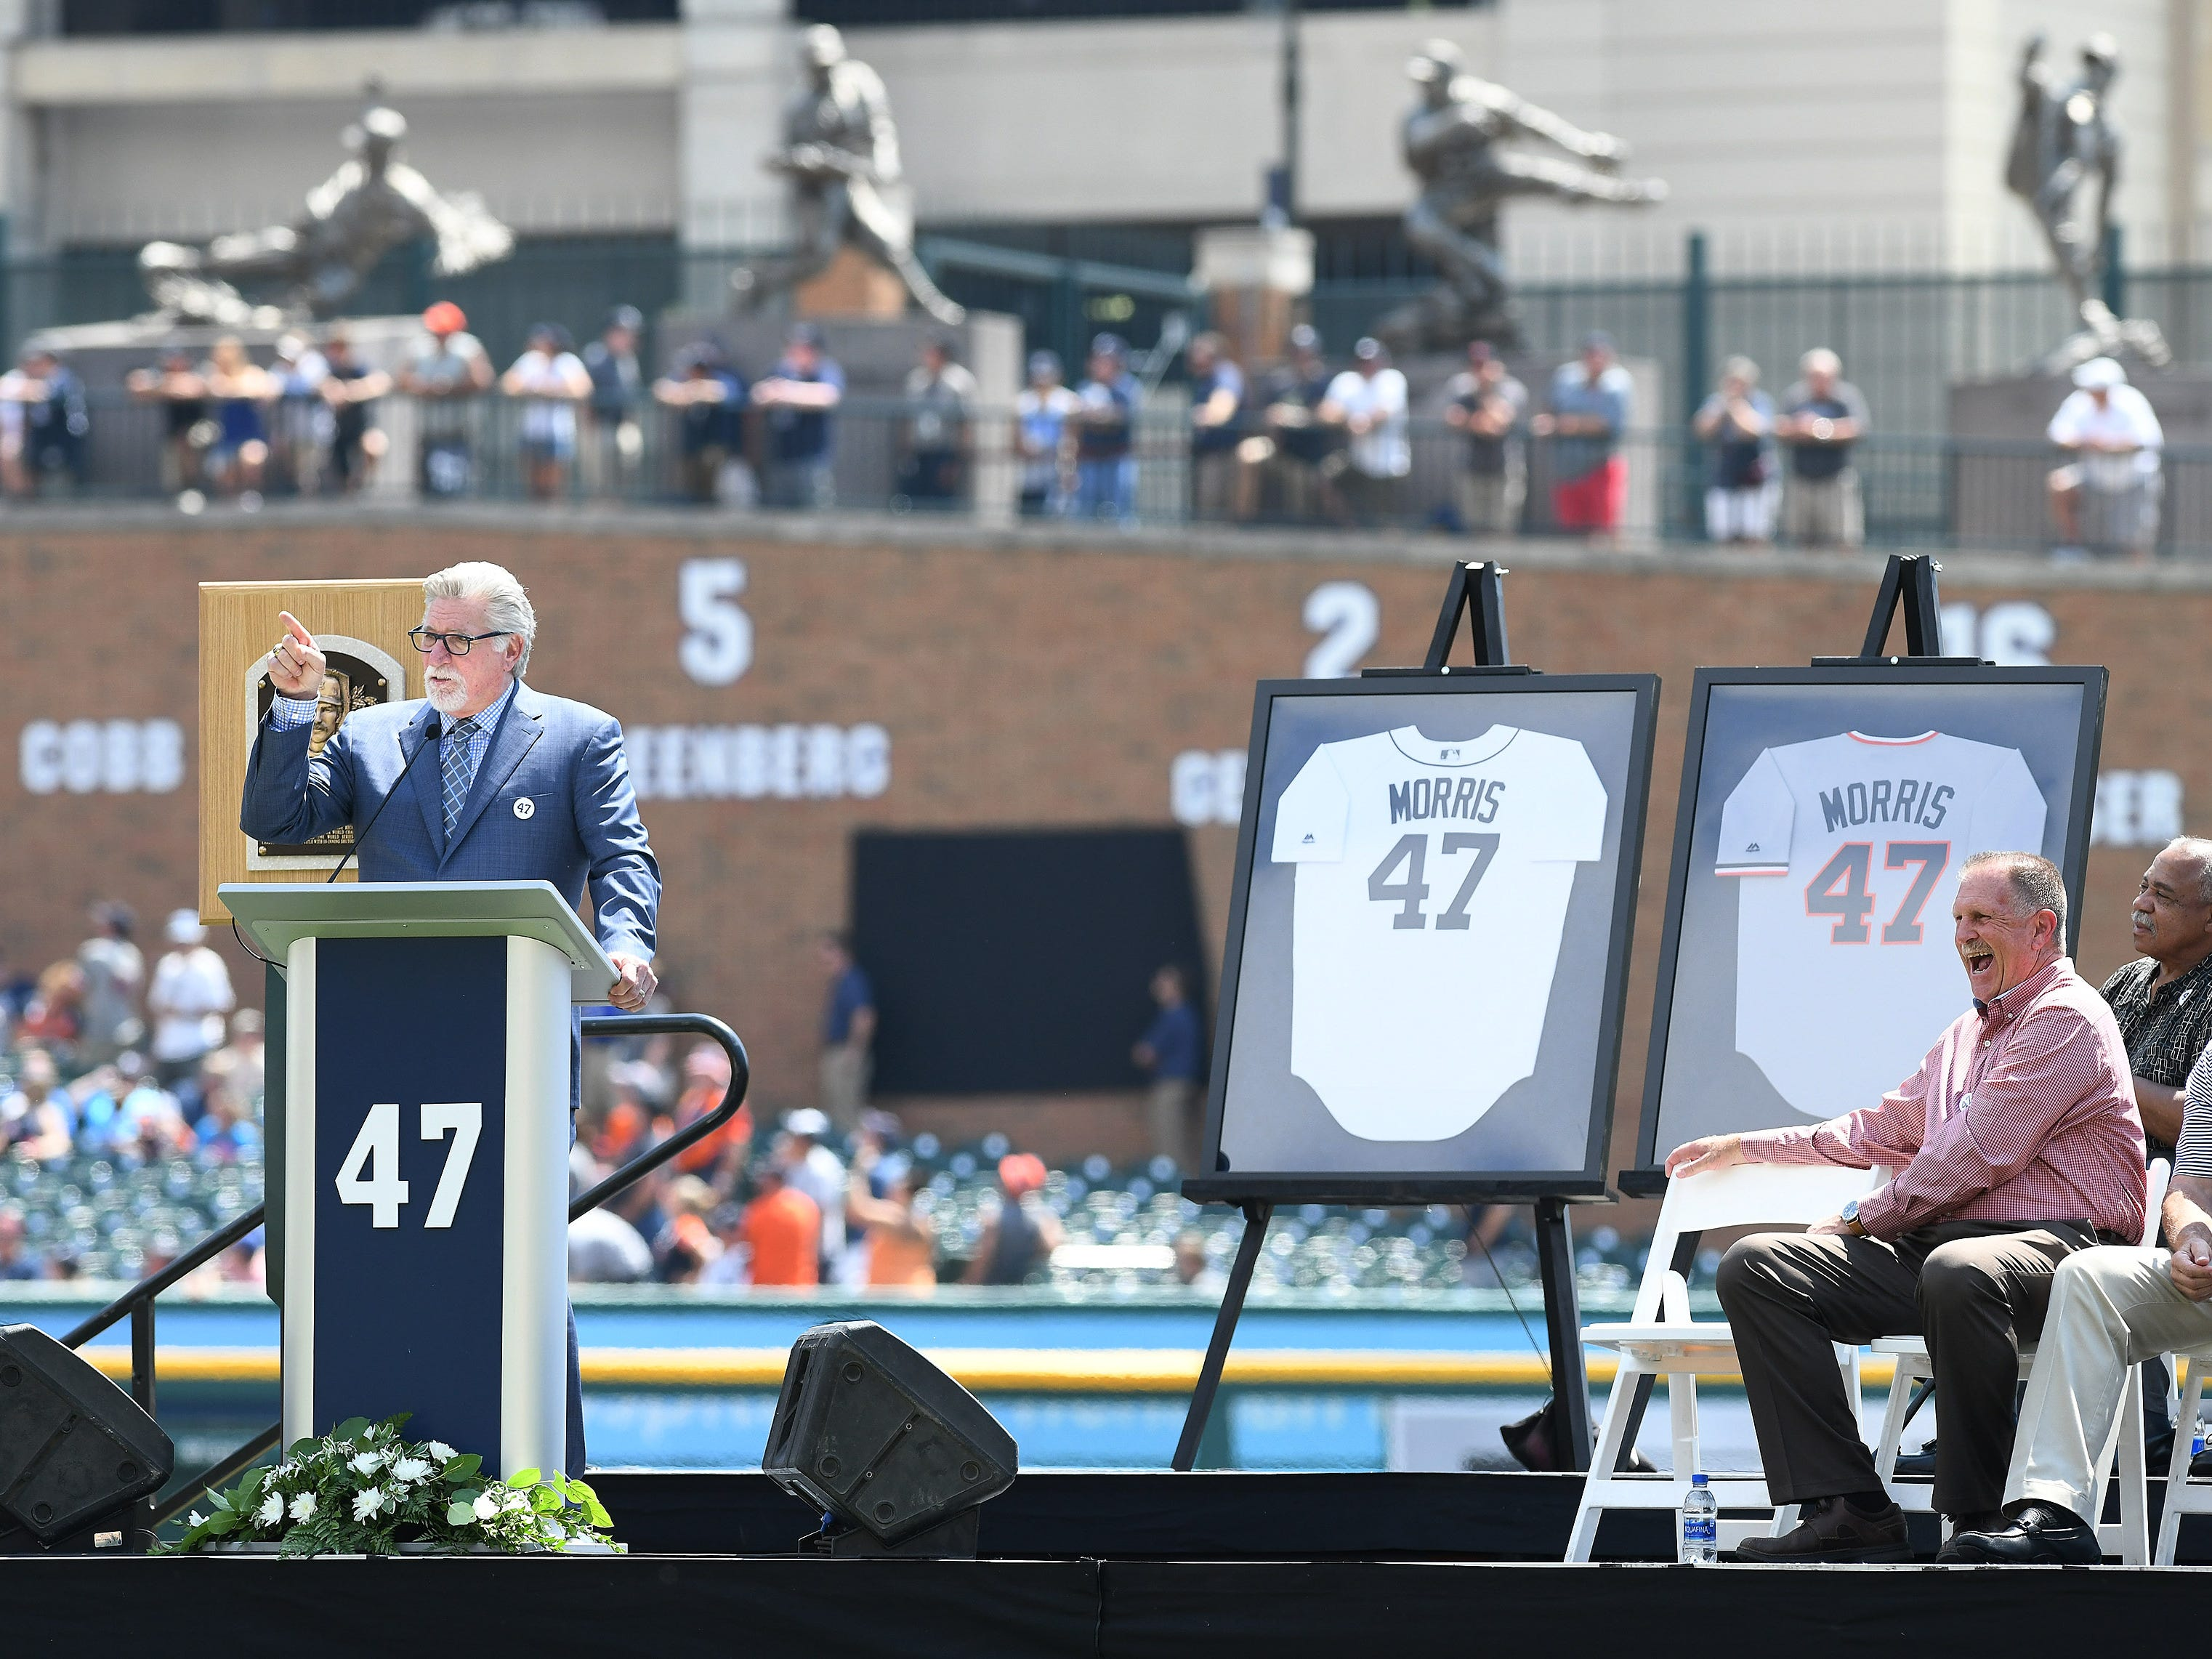 Tigers pitcher and Hall of Fame pitcher Jack Morris speaks during the special pregame ceremony to retire the his #47.